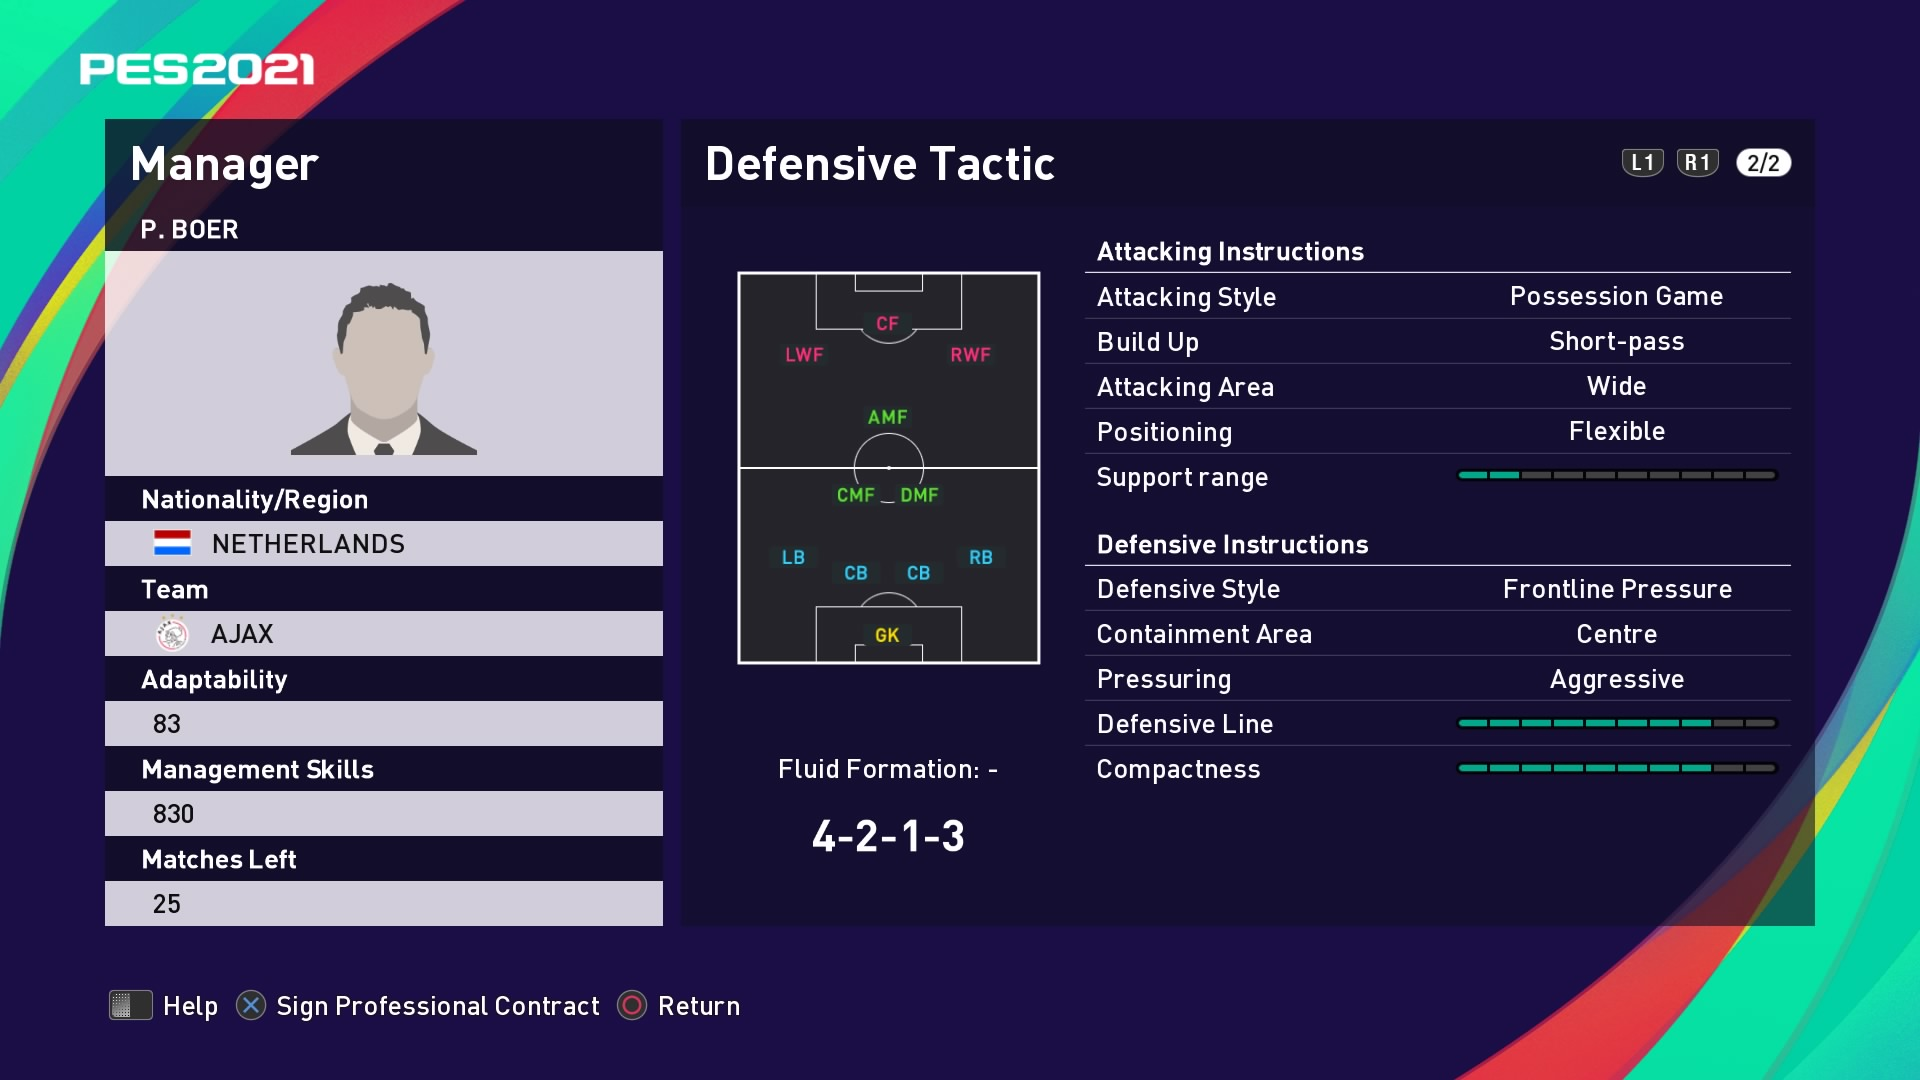 P. Boer (Erik ten Hag) Defensive Tactic in PES 2021 myClub